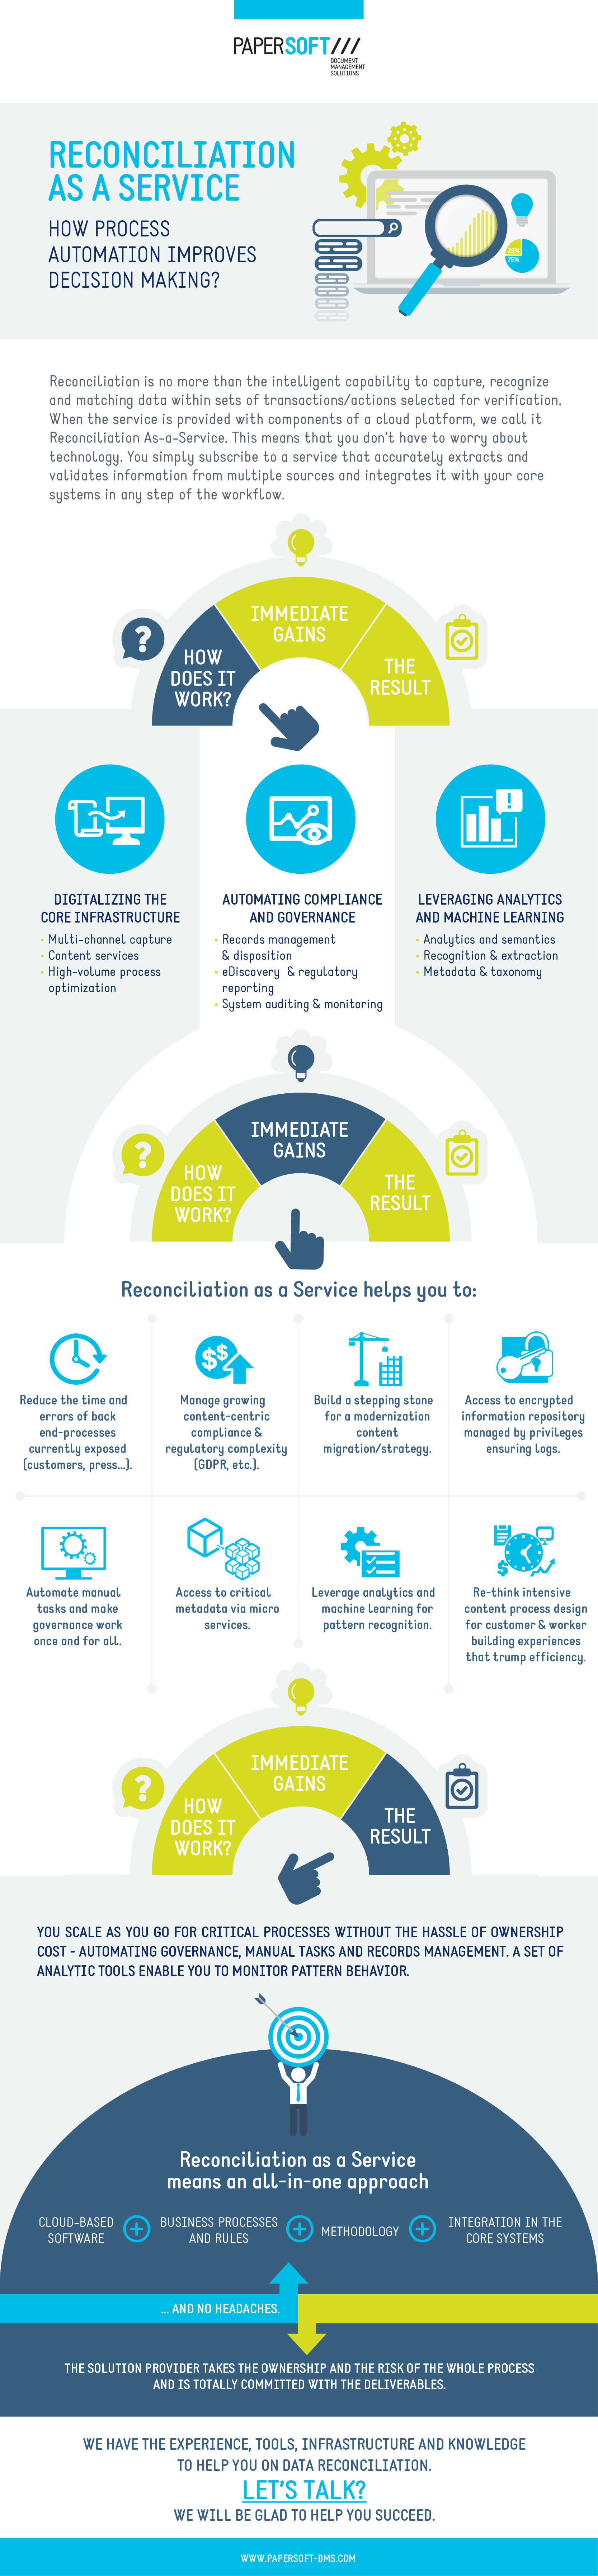 Reconciliation as a Service – How process automation improves decision making?